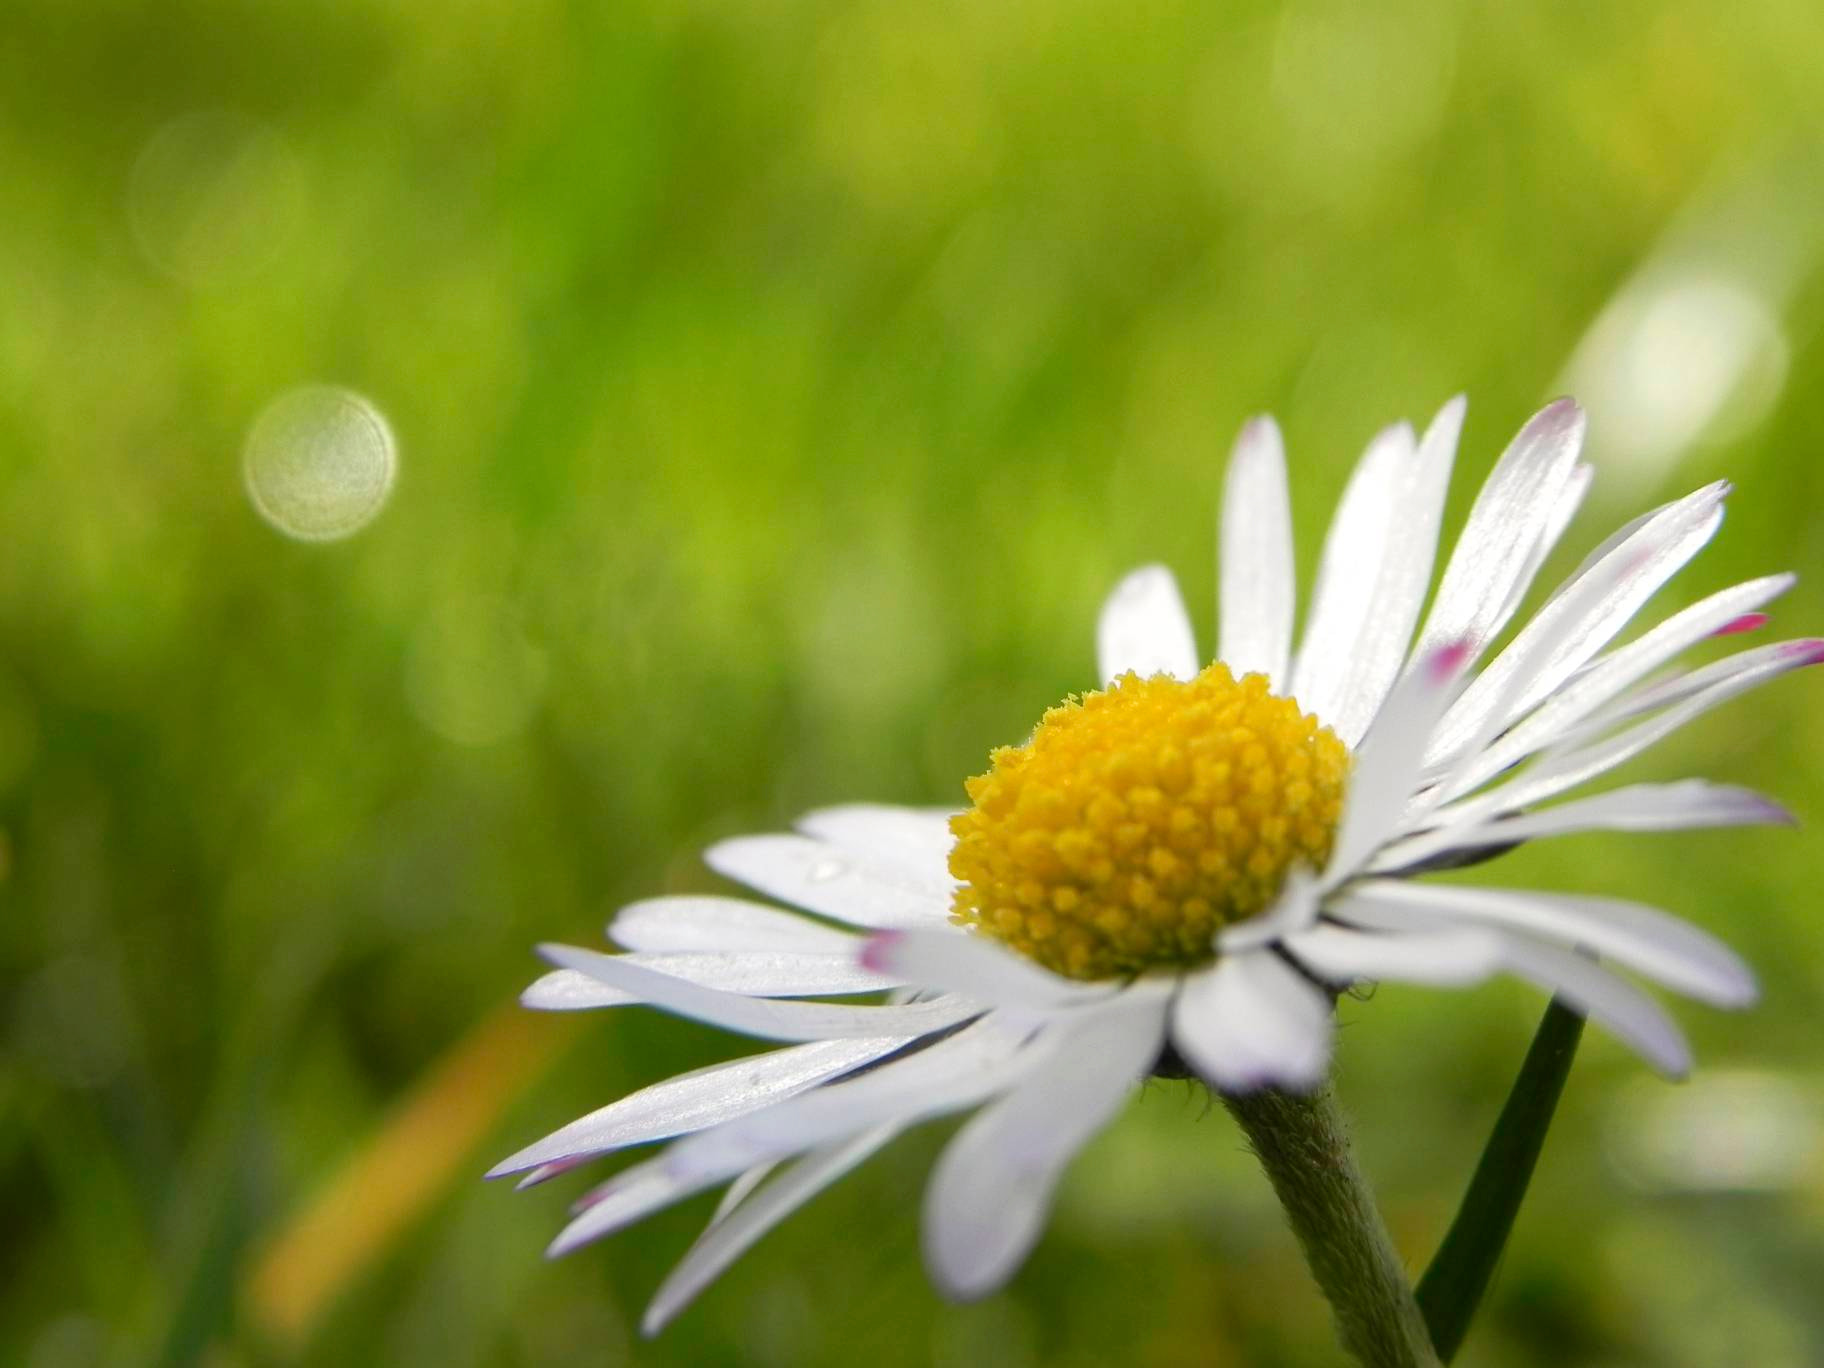 Photograph Daisy by Ruben Schmalenberg on 500px